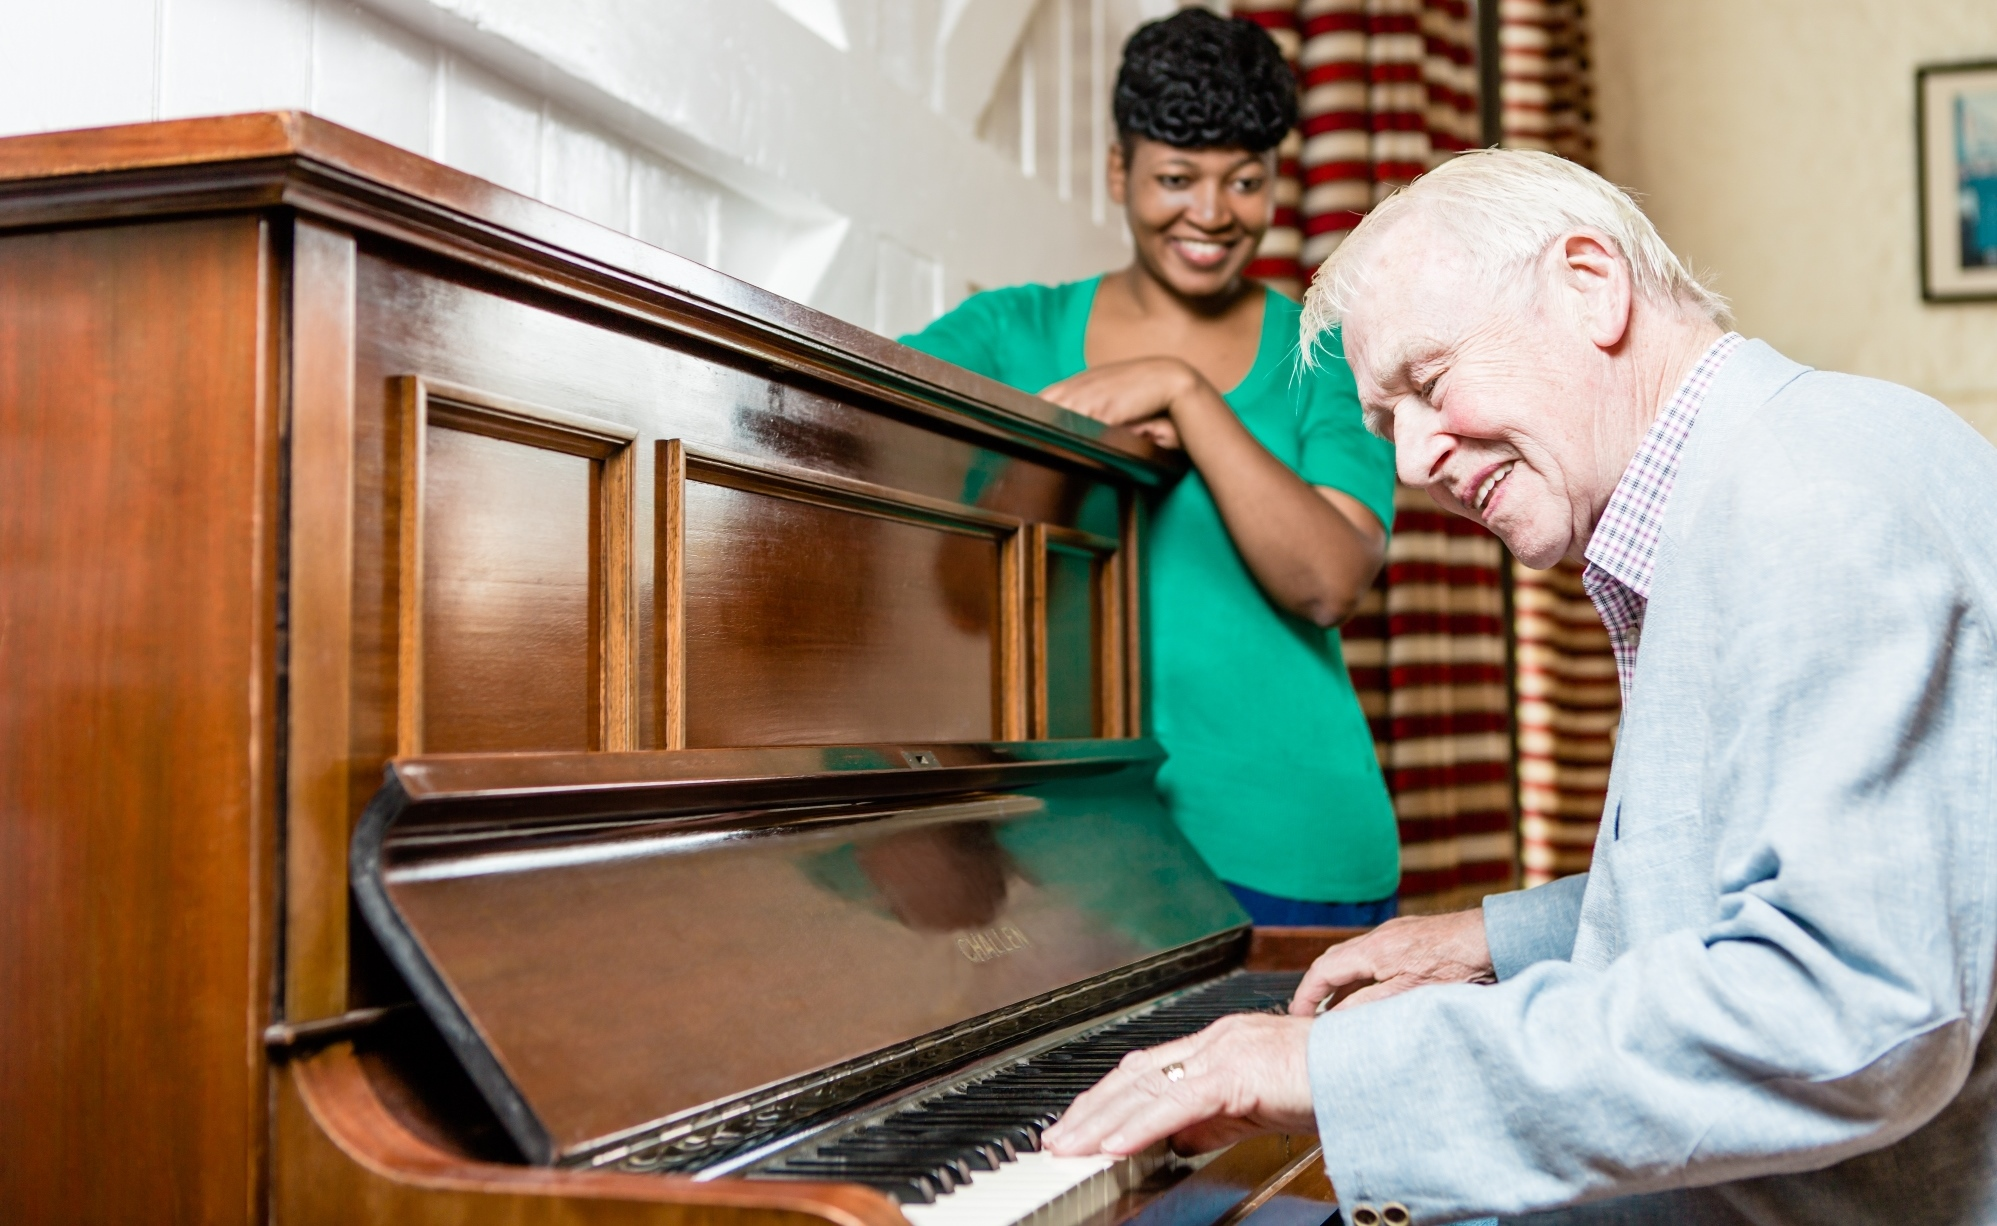 An elderly man playing the piano